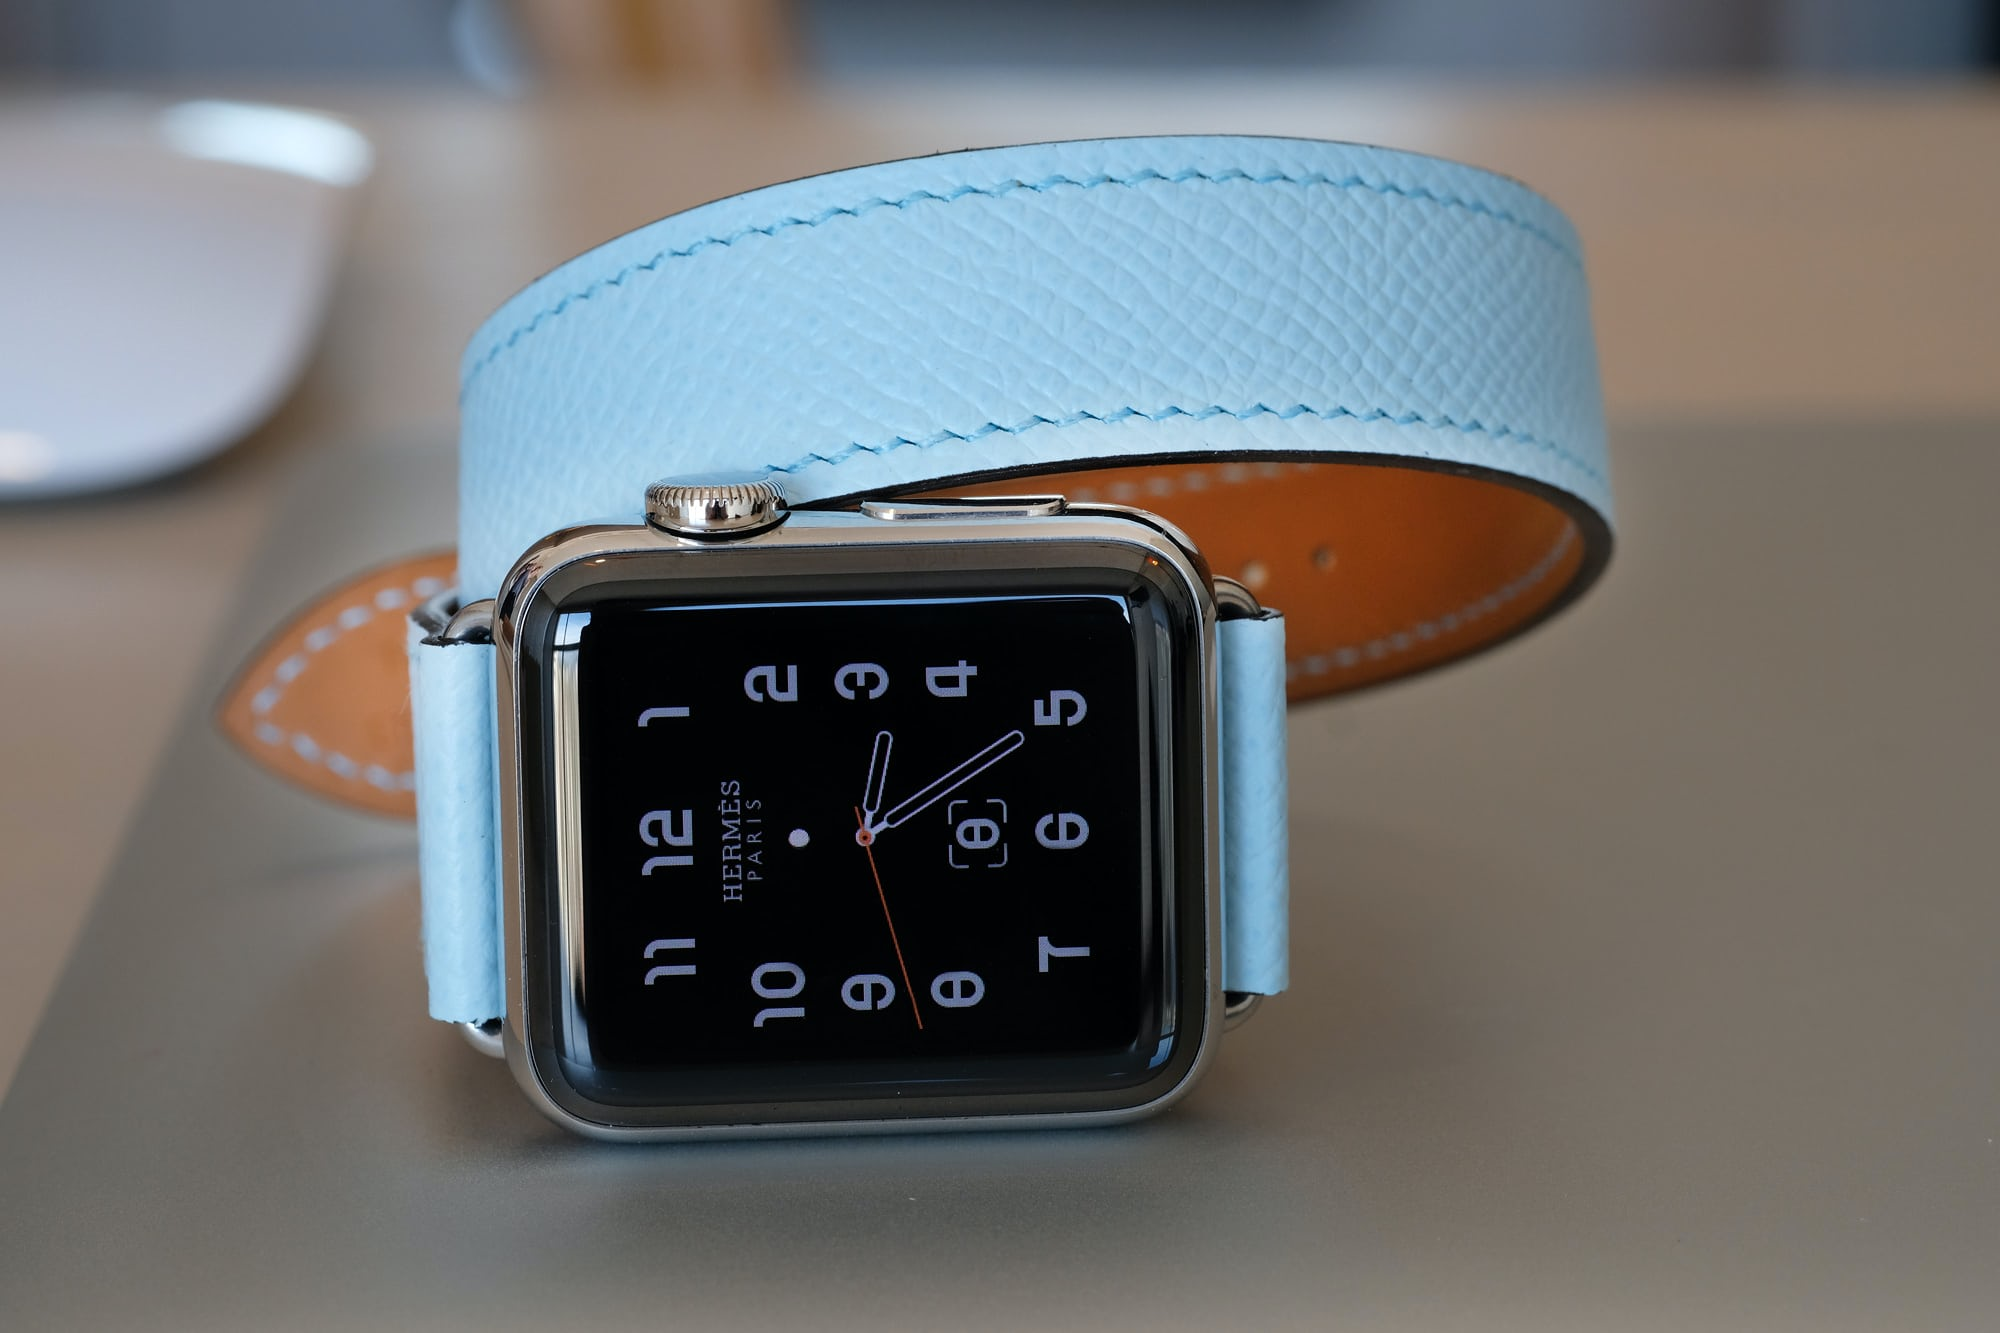 Herms apple watch  business news: forget the swiss, it's fossil that apple is threatening Business News: Forget the Swiss, It's Fossil That Apple Is Threatening hermes apple 17